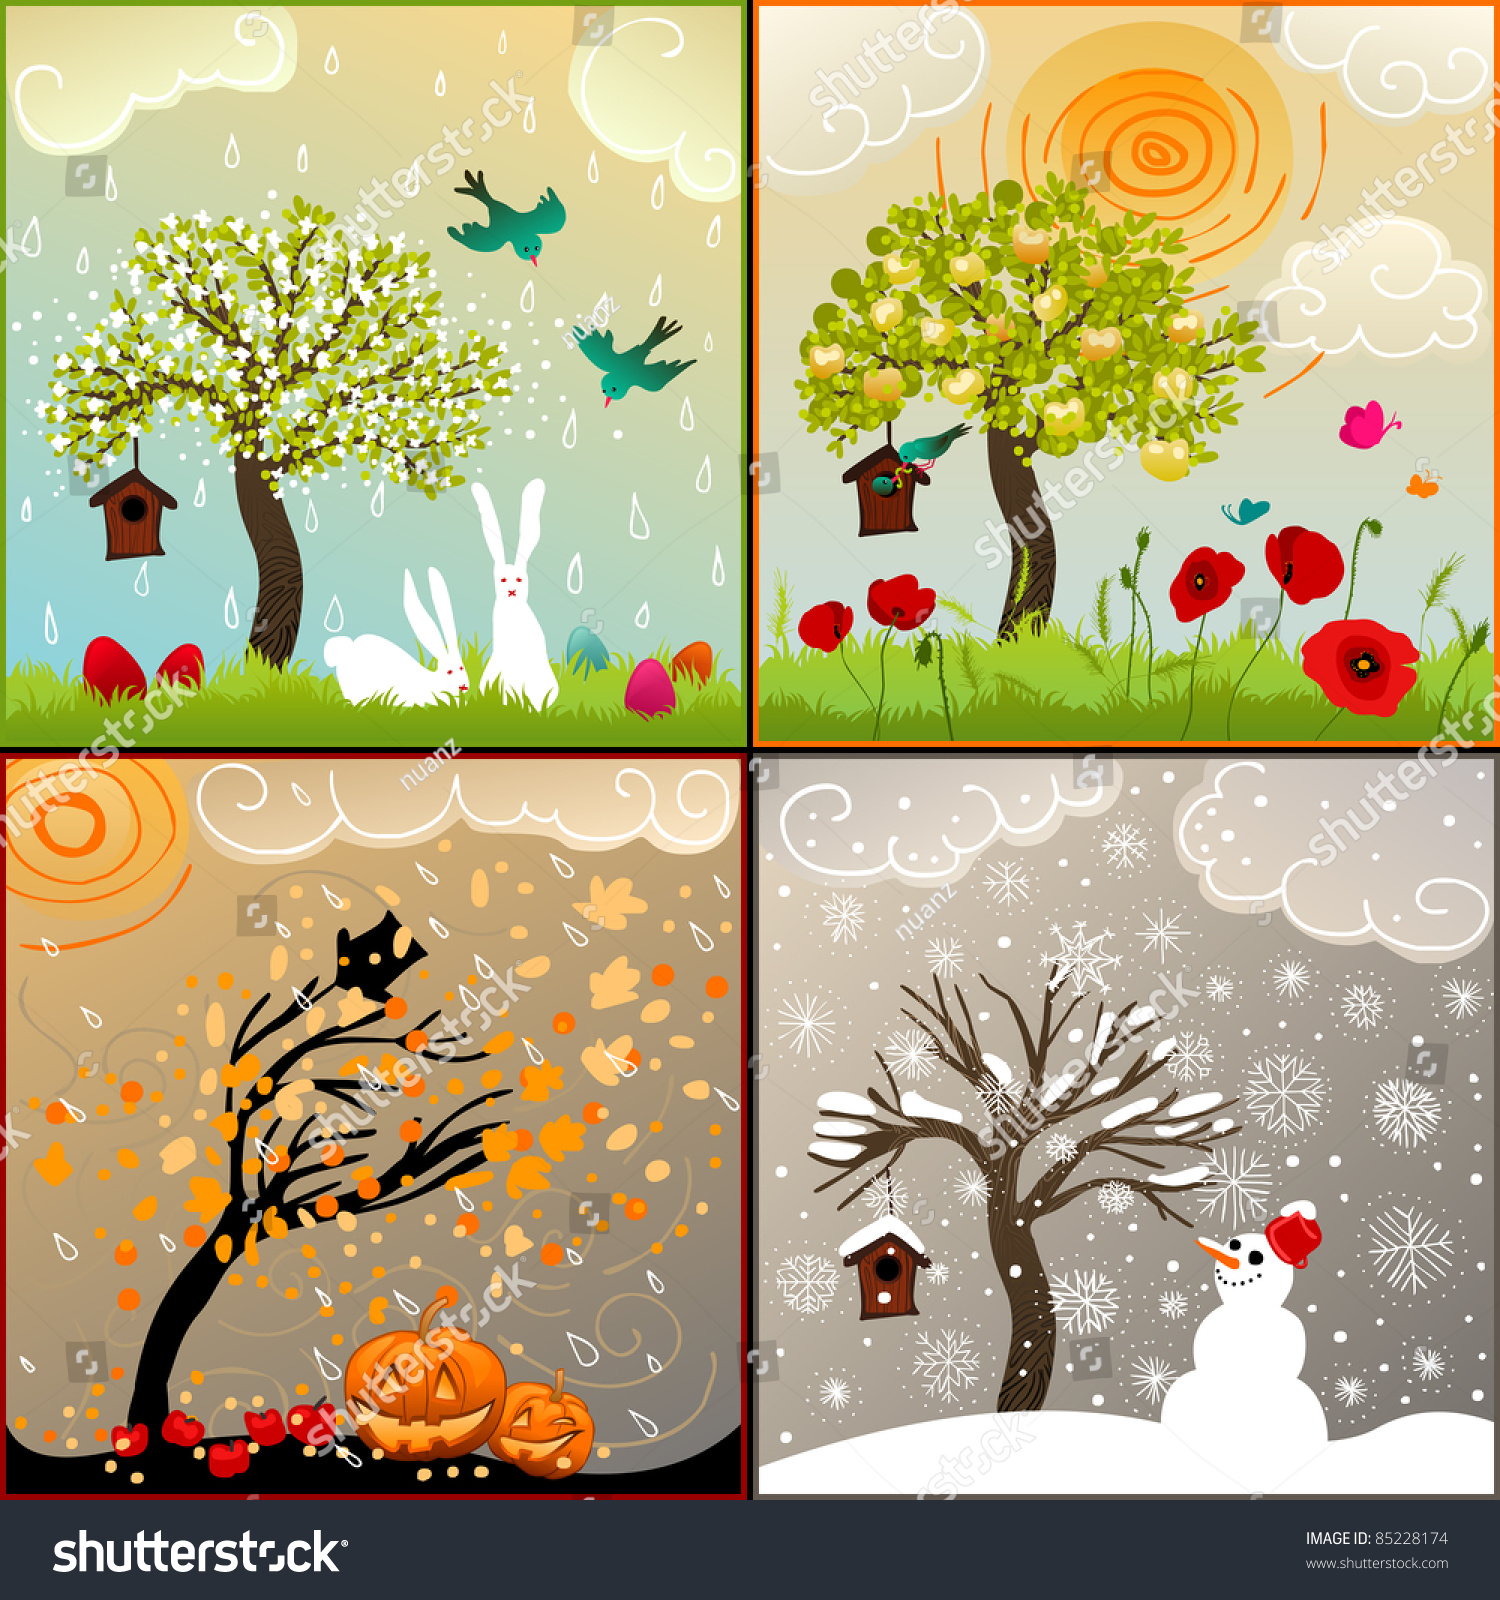 All Seasons Four Seasons Set Tree Birdhouse Birds Stock Illustration